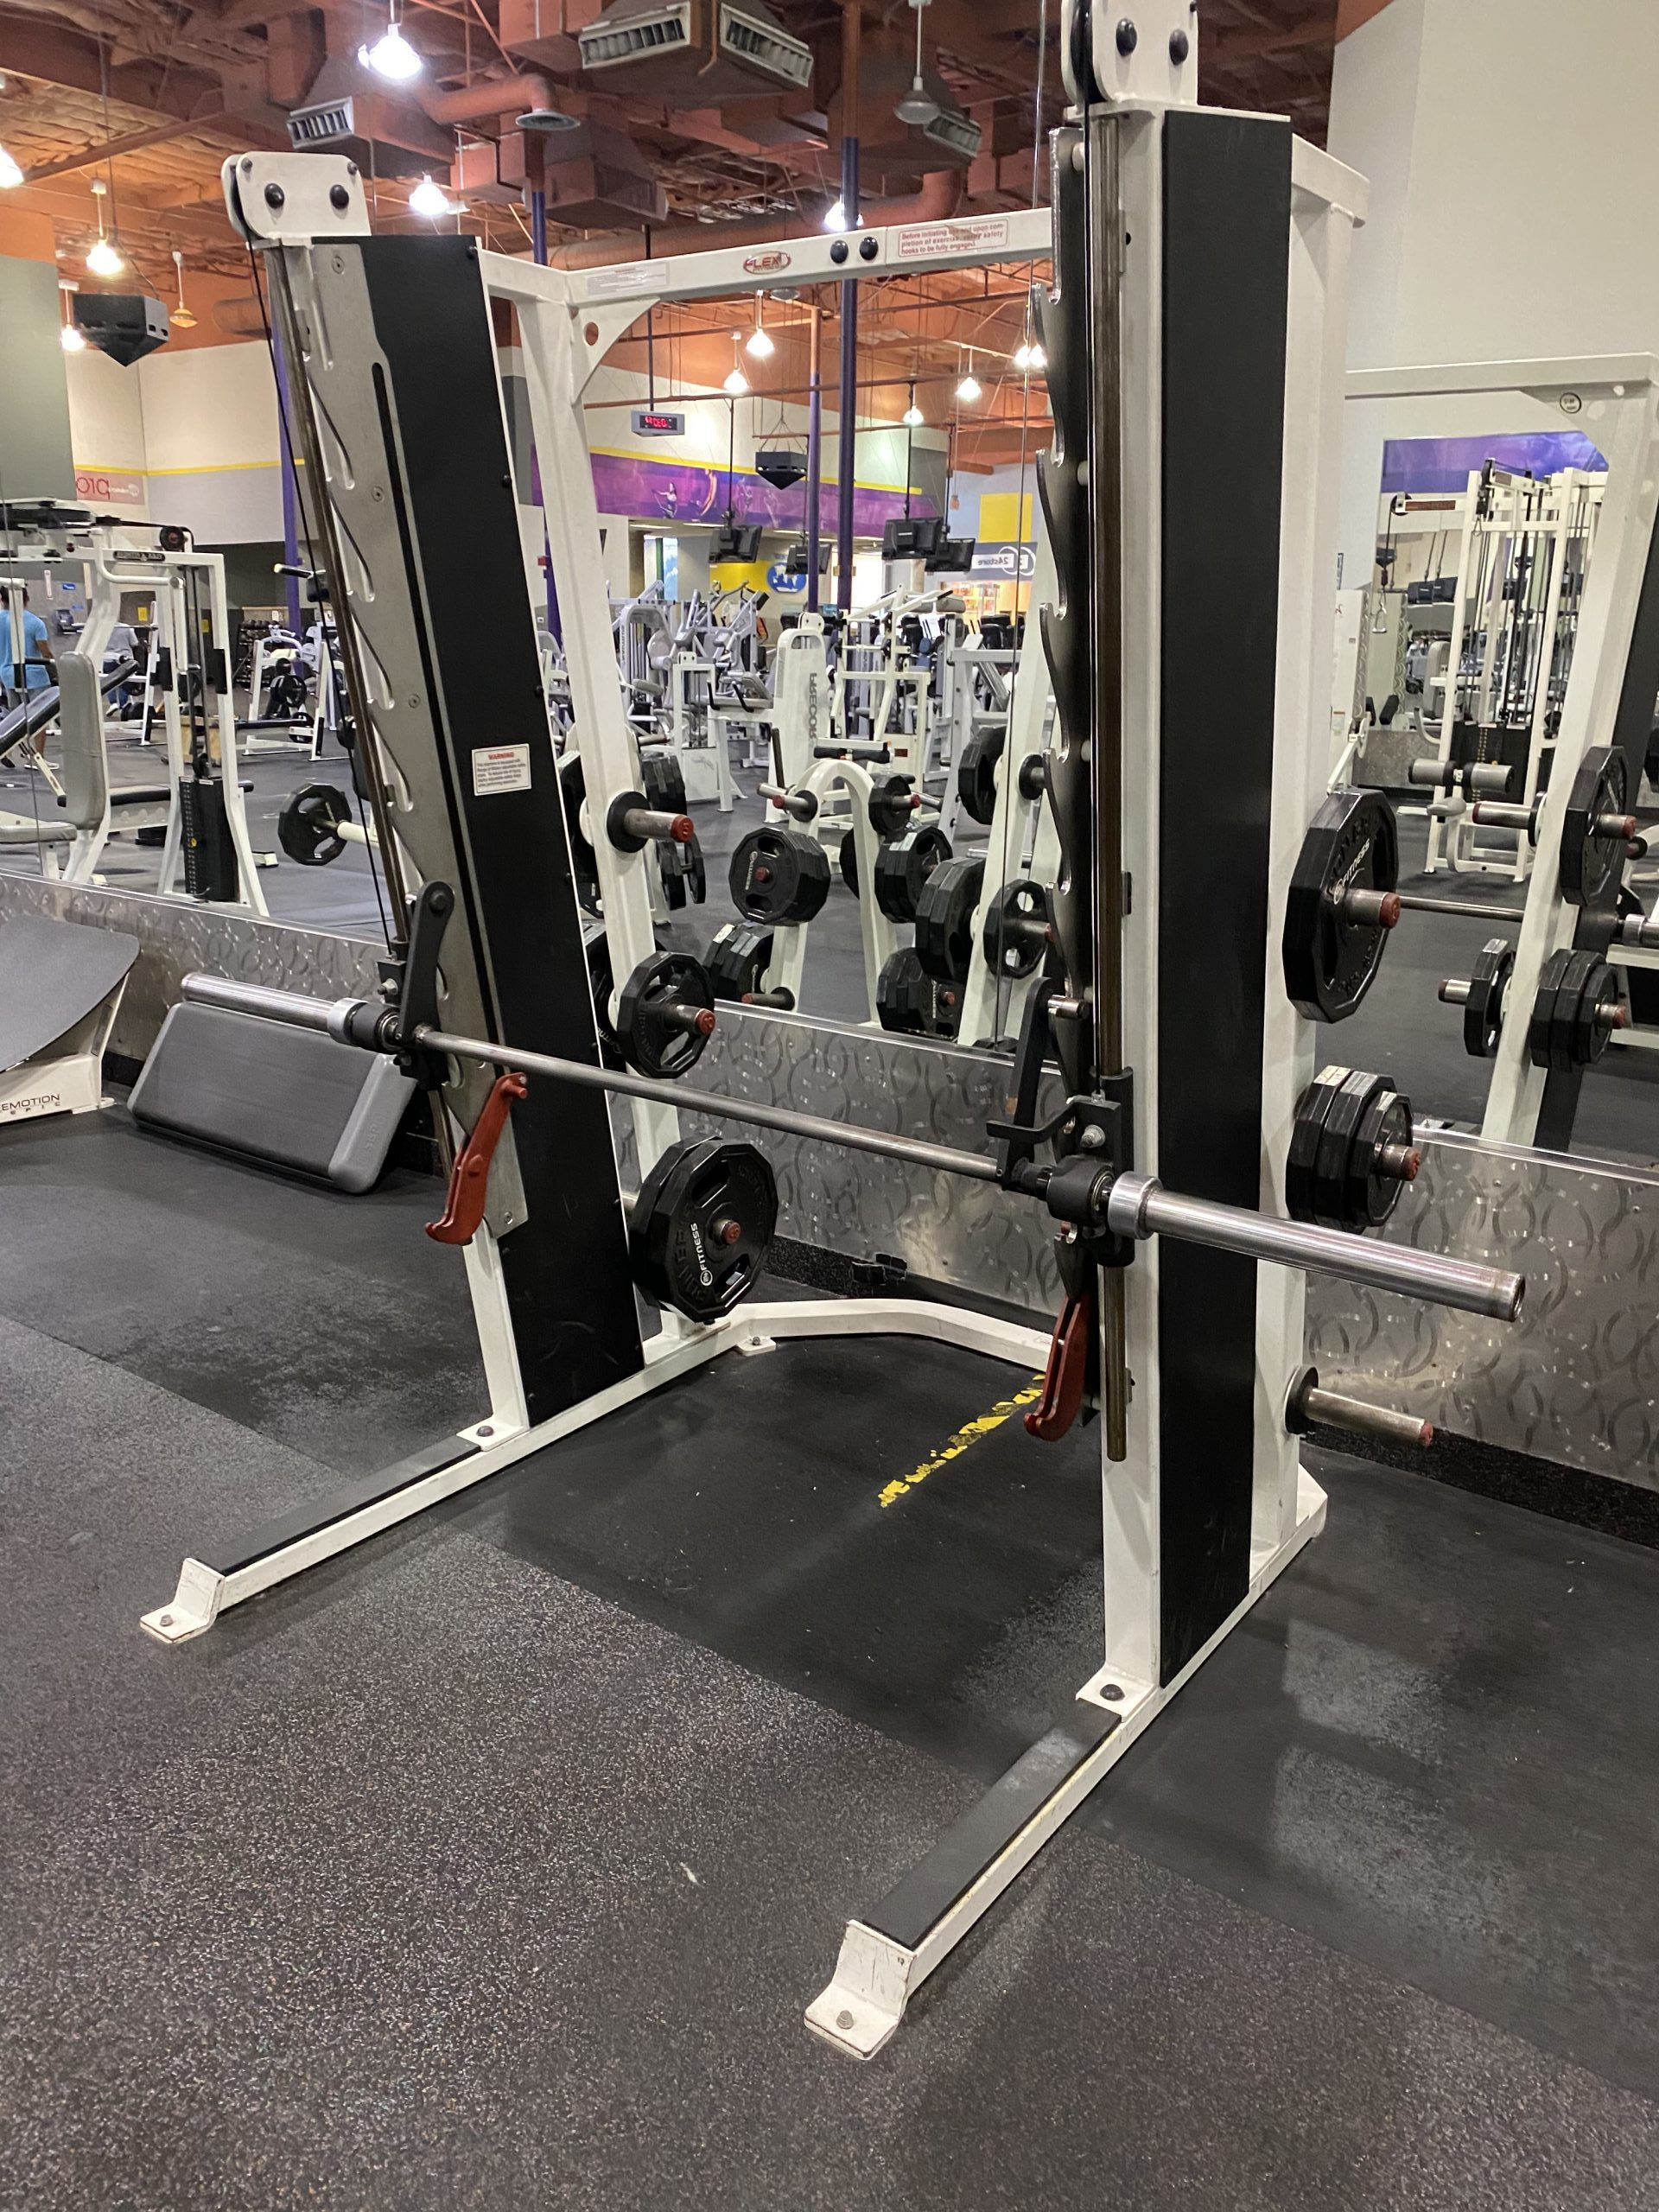 Flex Fitness Smith Machine | Gym Bro Fitness